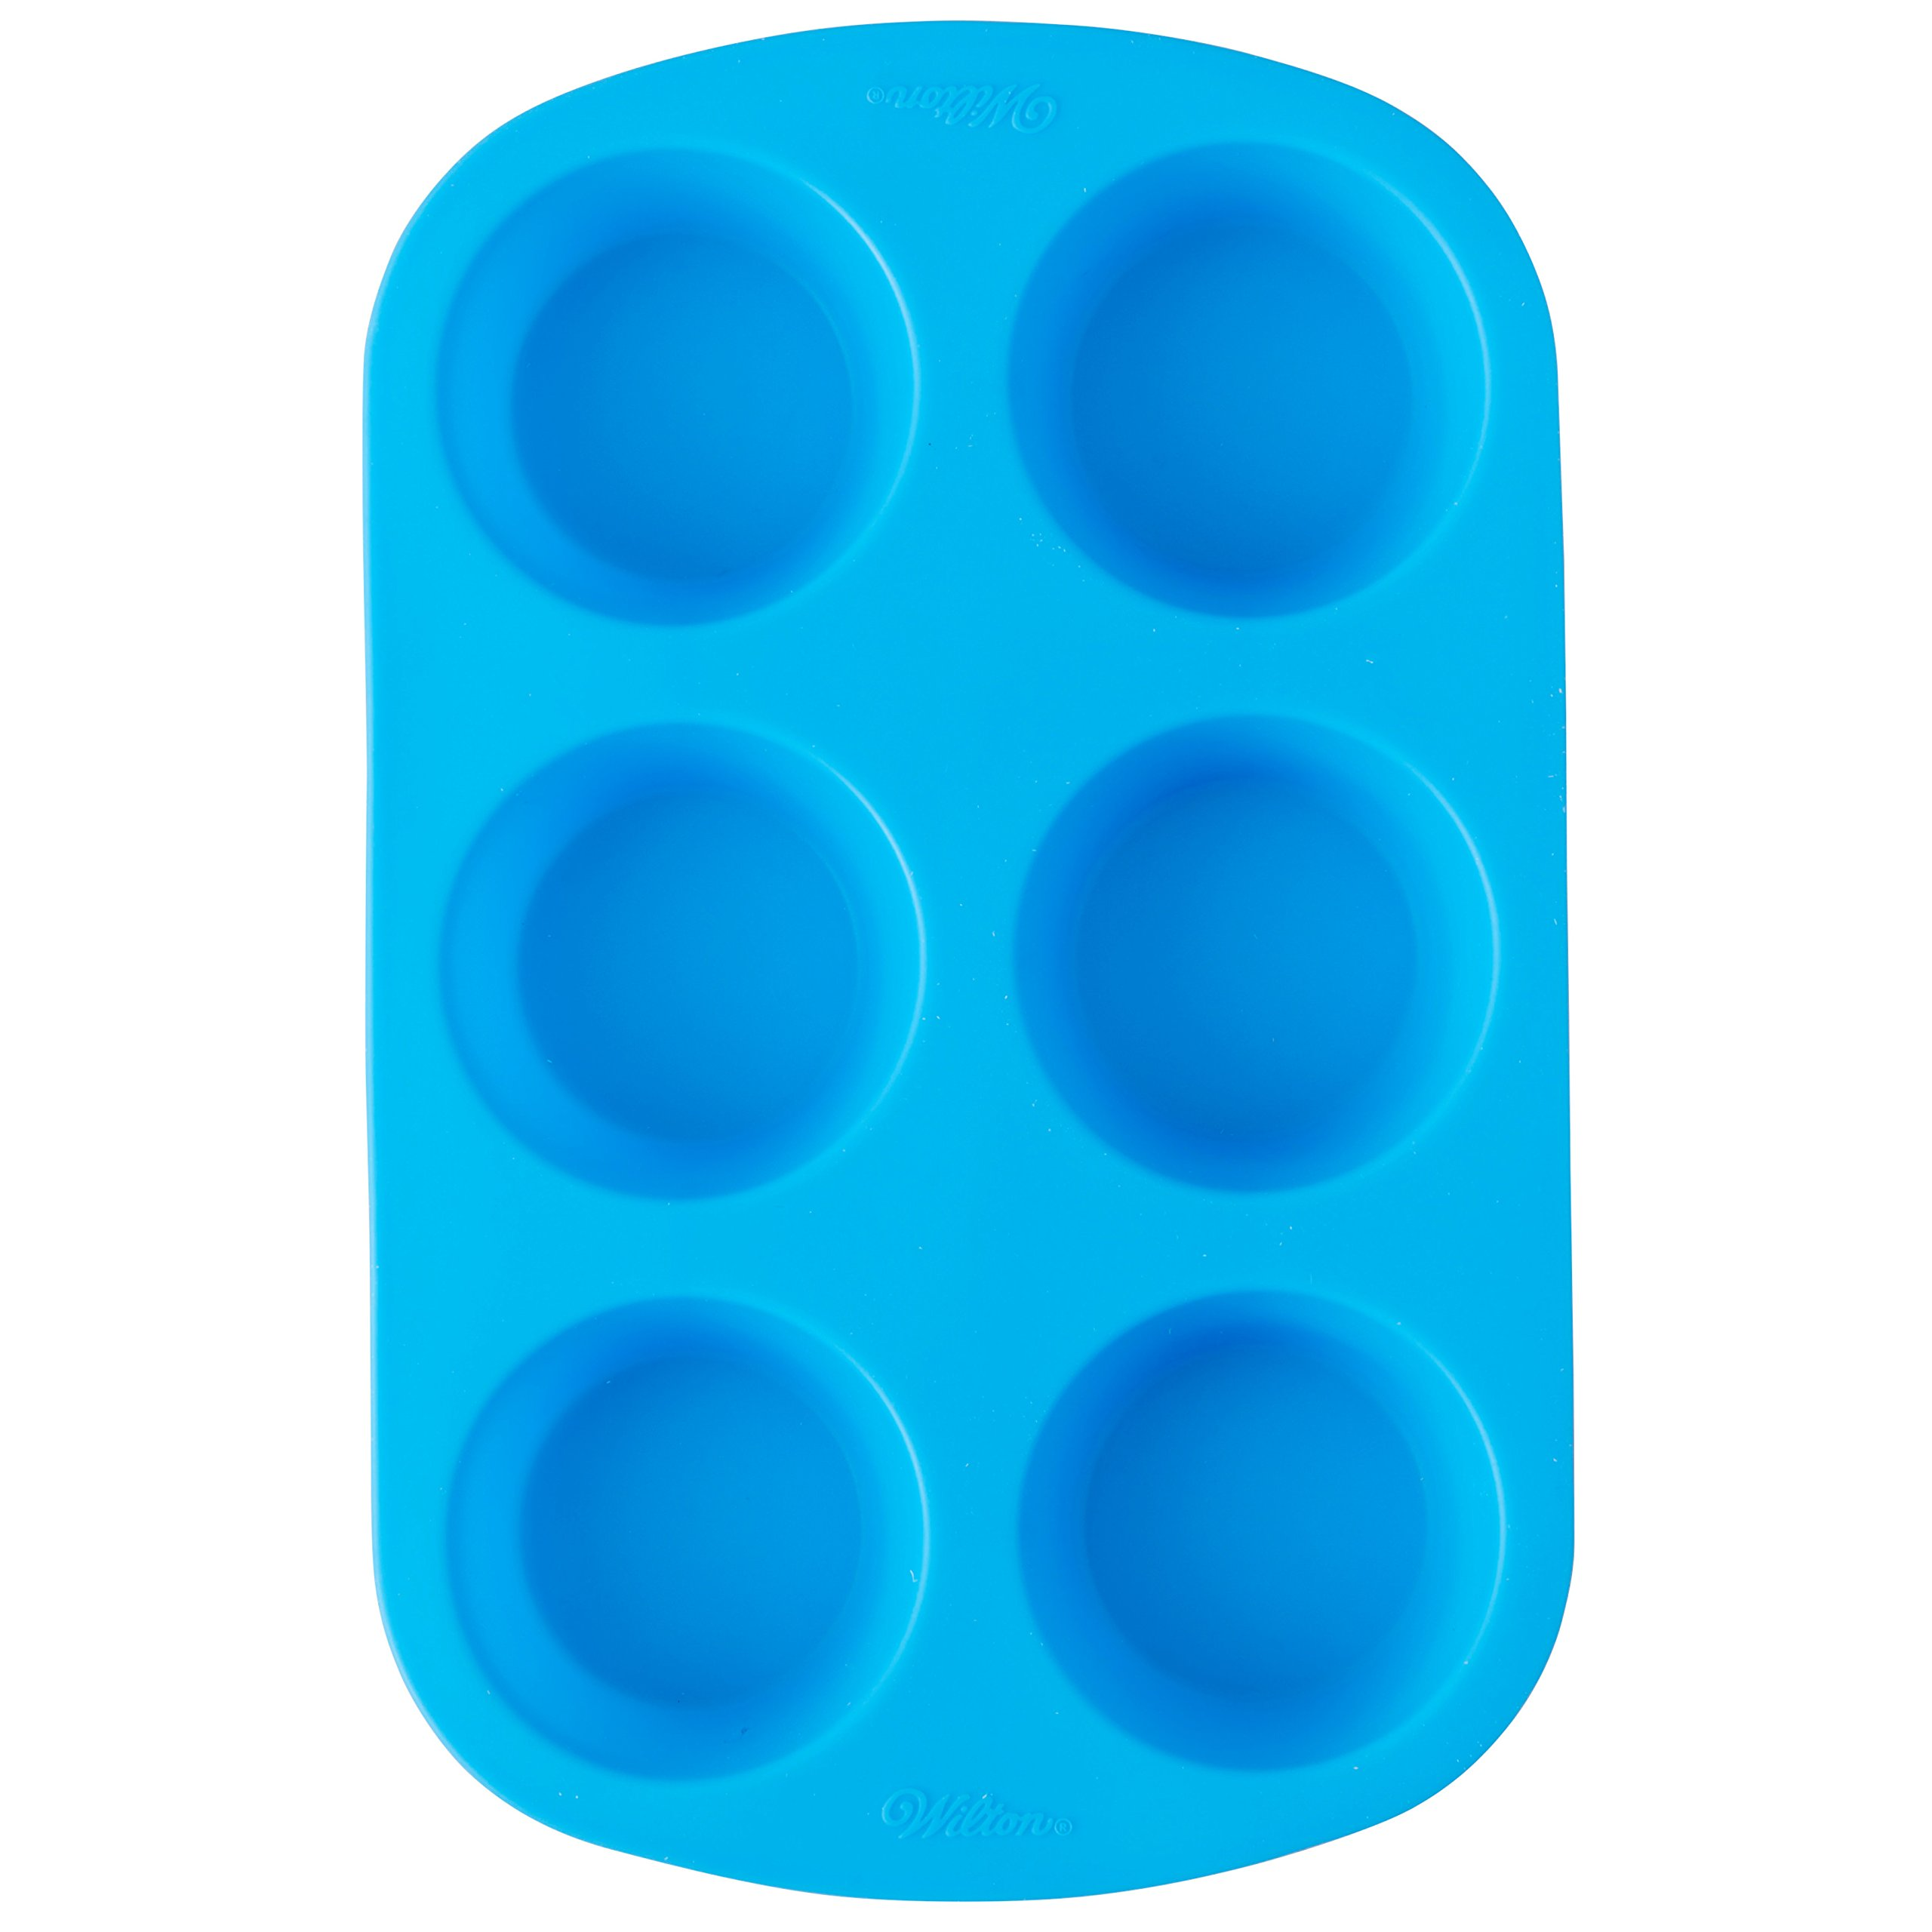 Wilton Easy-Flex Silicone Muffin and Cupcake Pan, 6-Cup